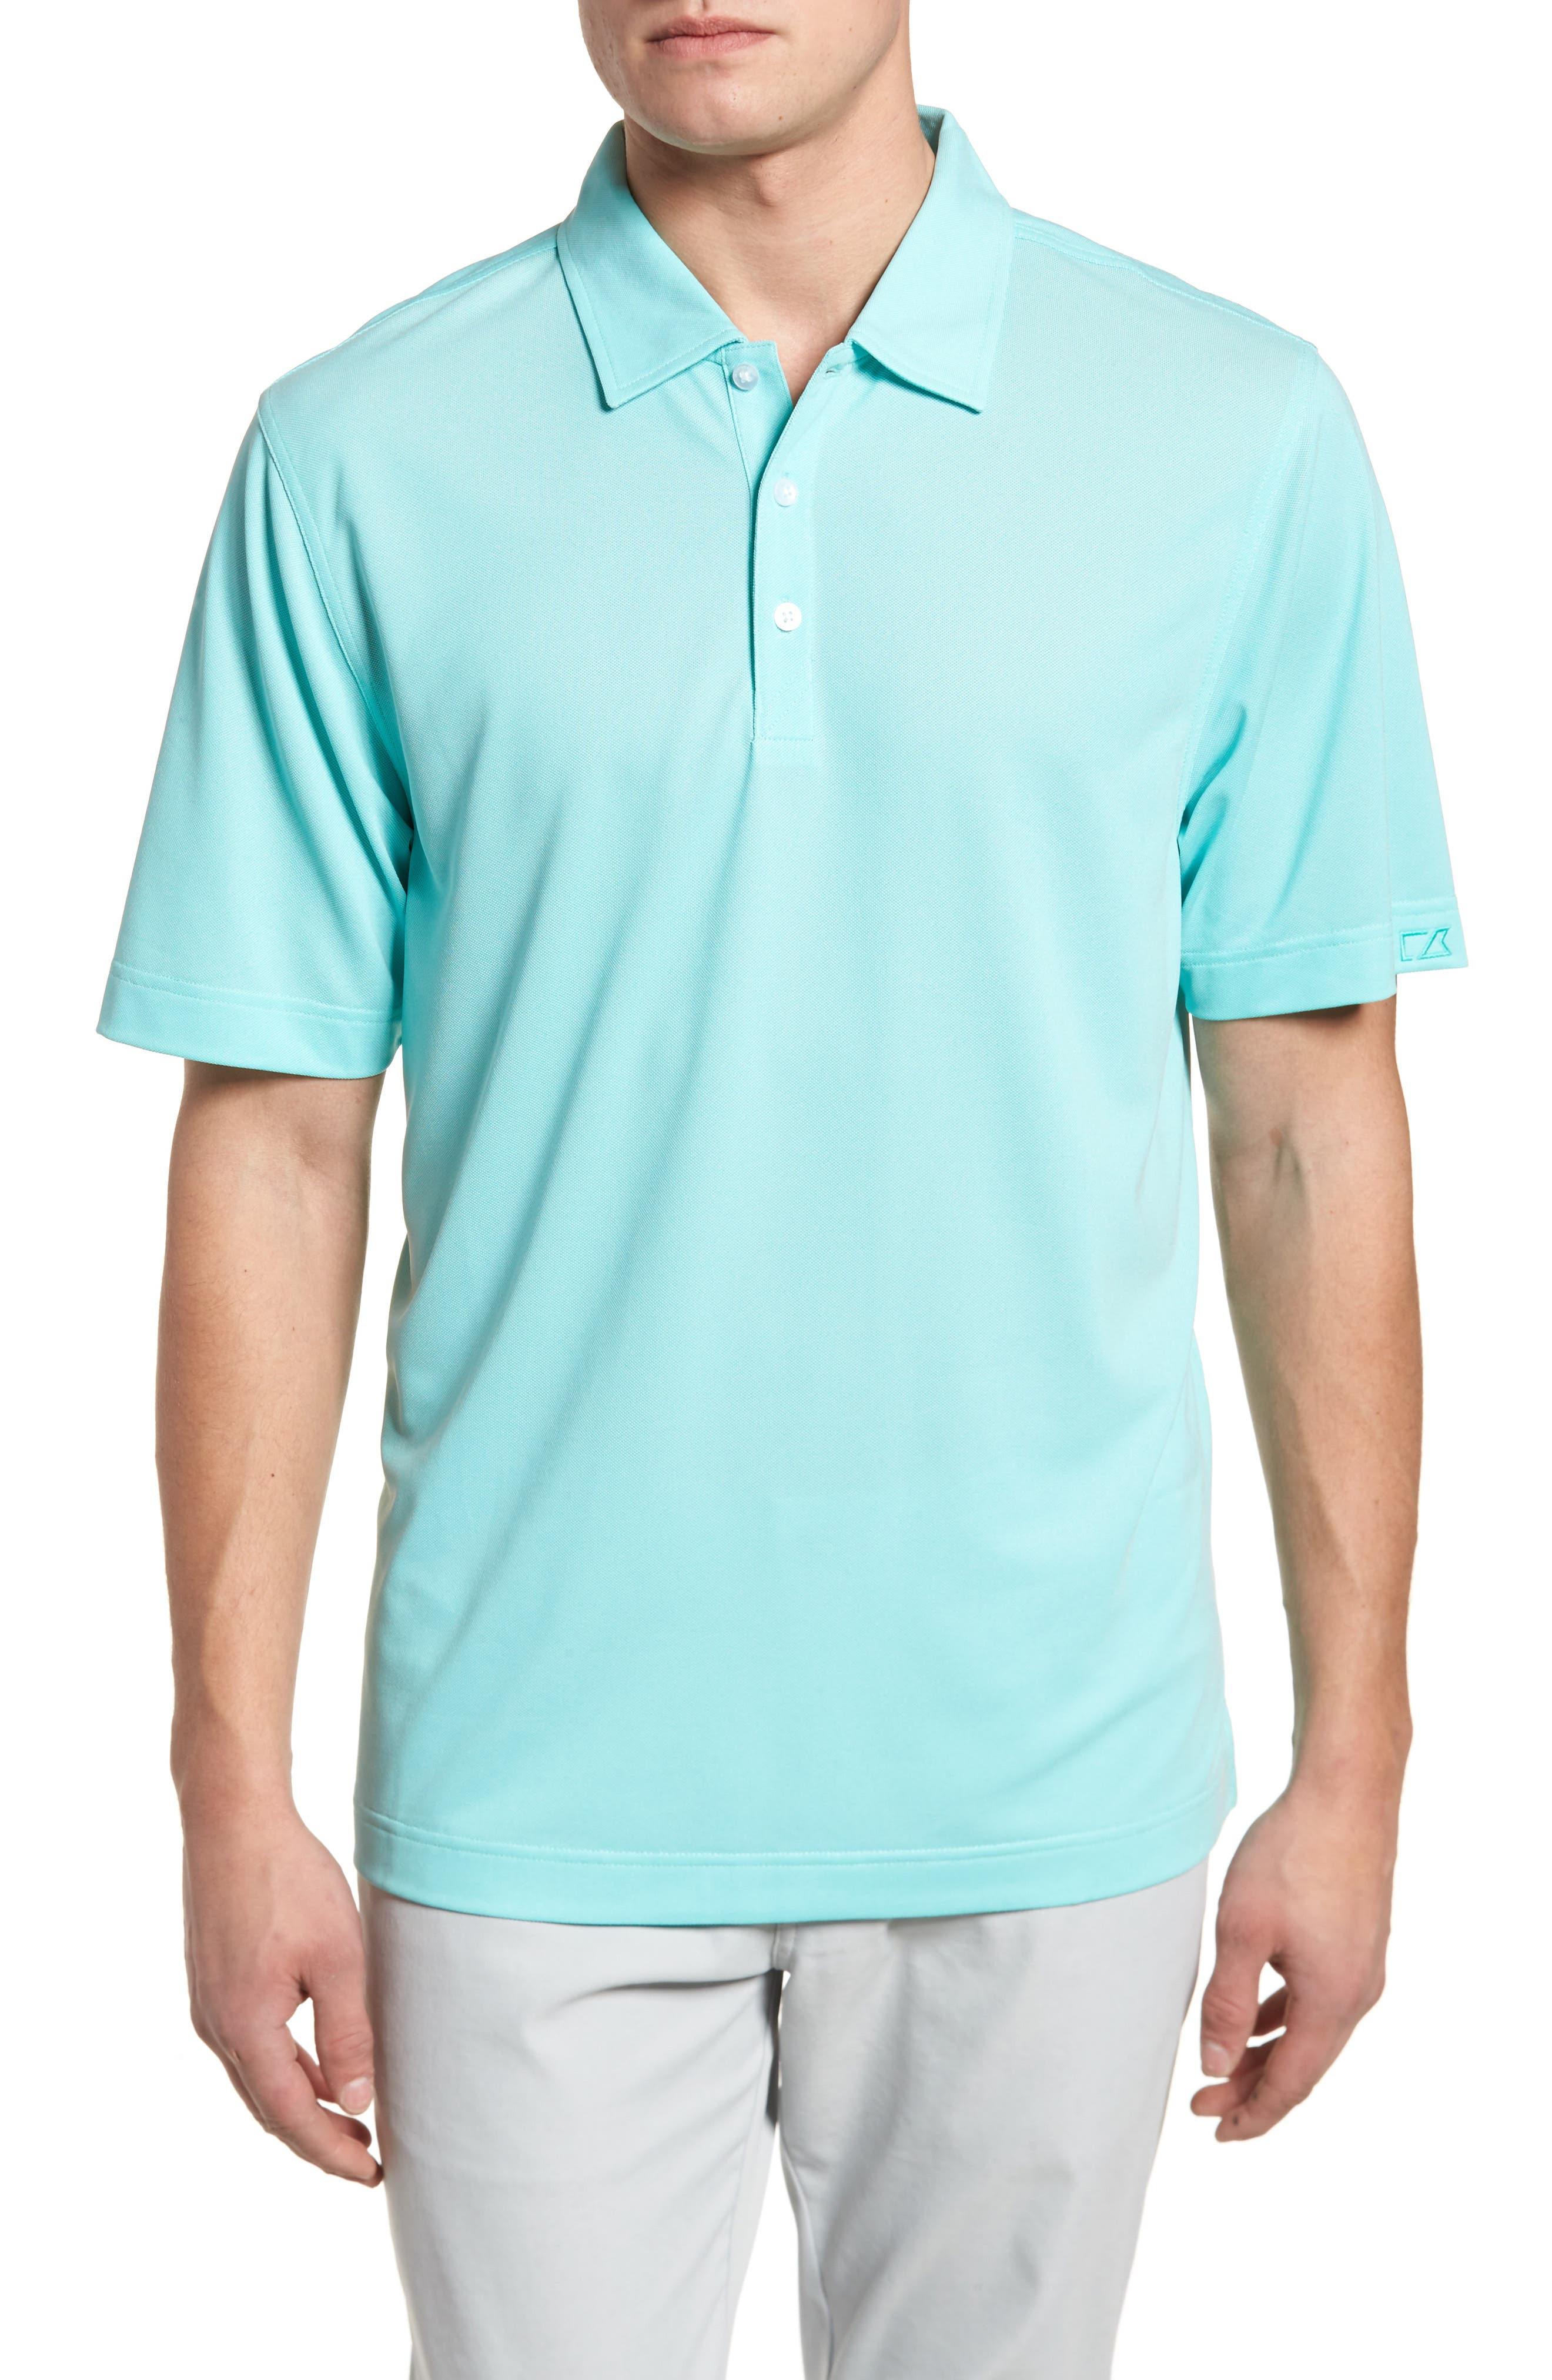 Alternate Image 1 Selected - Cutter & Buck 'Blaine Oxford' Moisture Wicking Dry Tec Polo